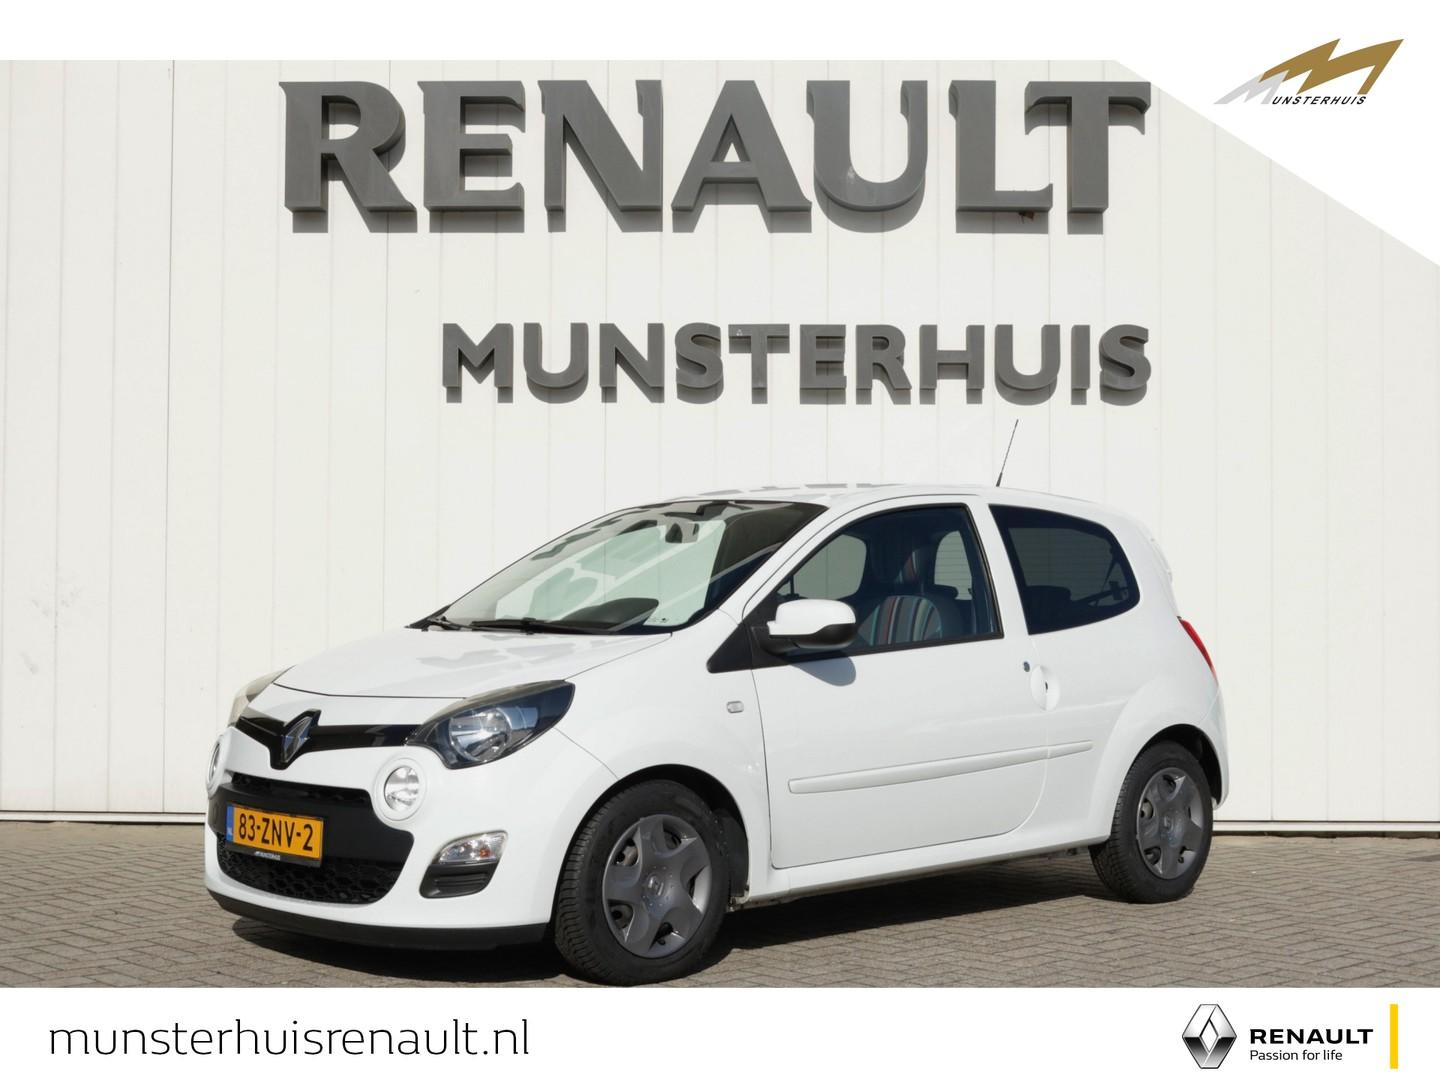 Renault Twingo 1.2 16v 75 collection - airco - cruise control